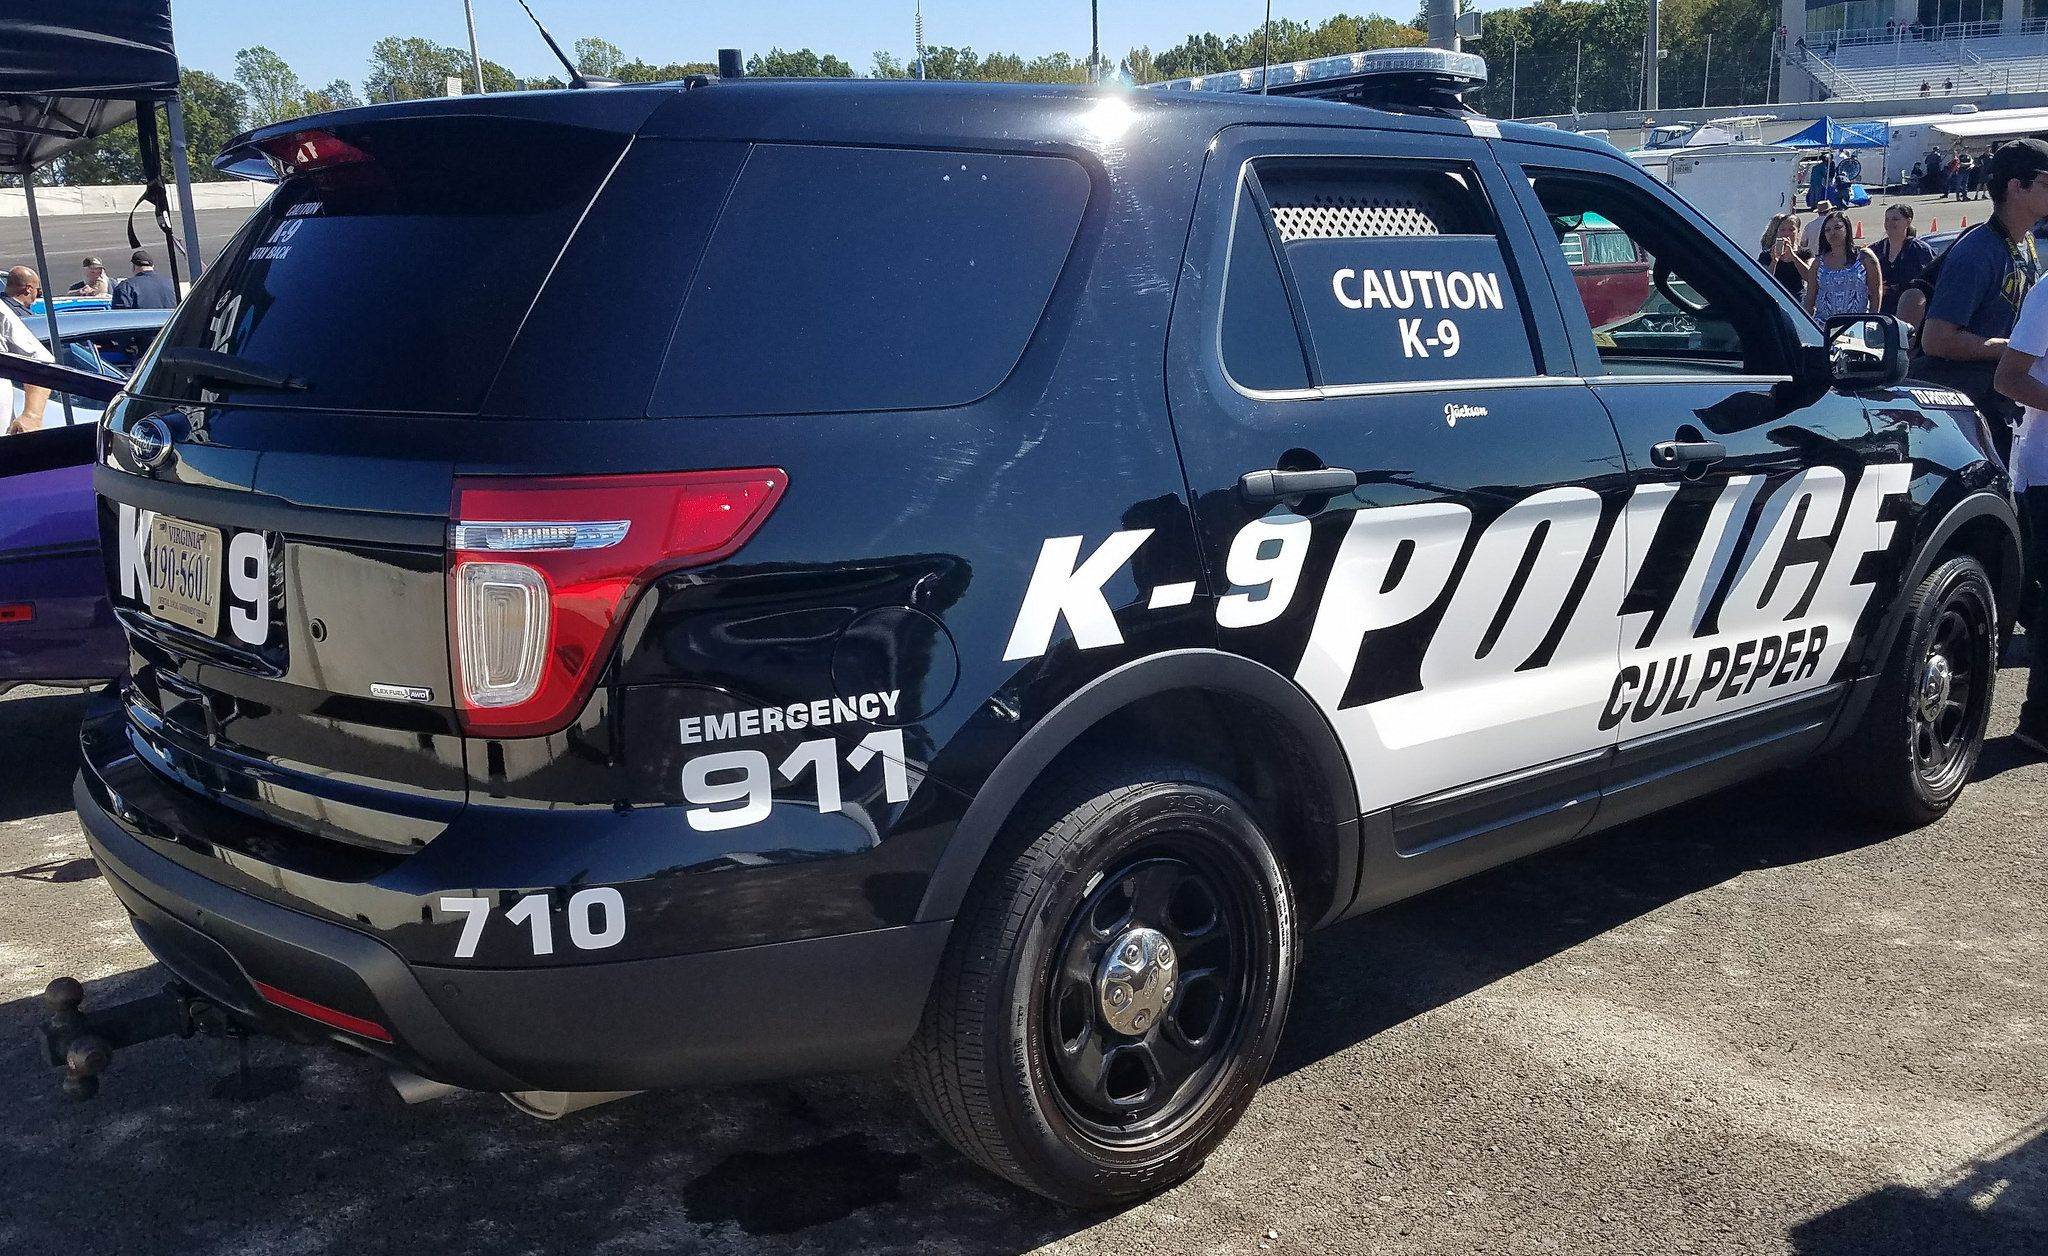 Culpeper Police Department K 9 Unit Ford Police Interceptor Utility Ford Police Interceptor Police Department